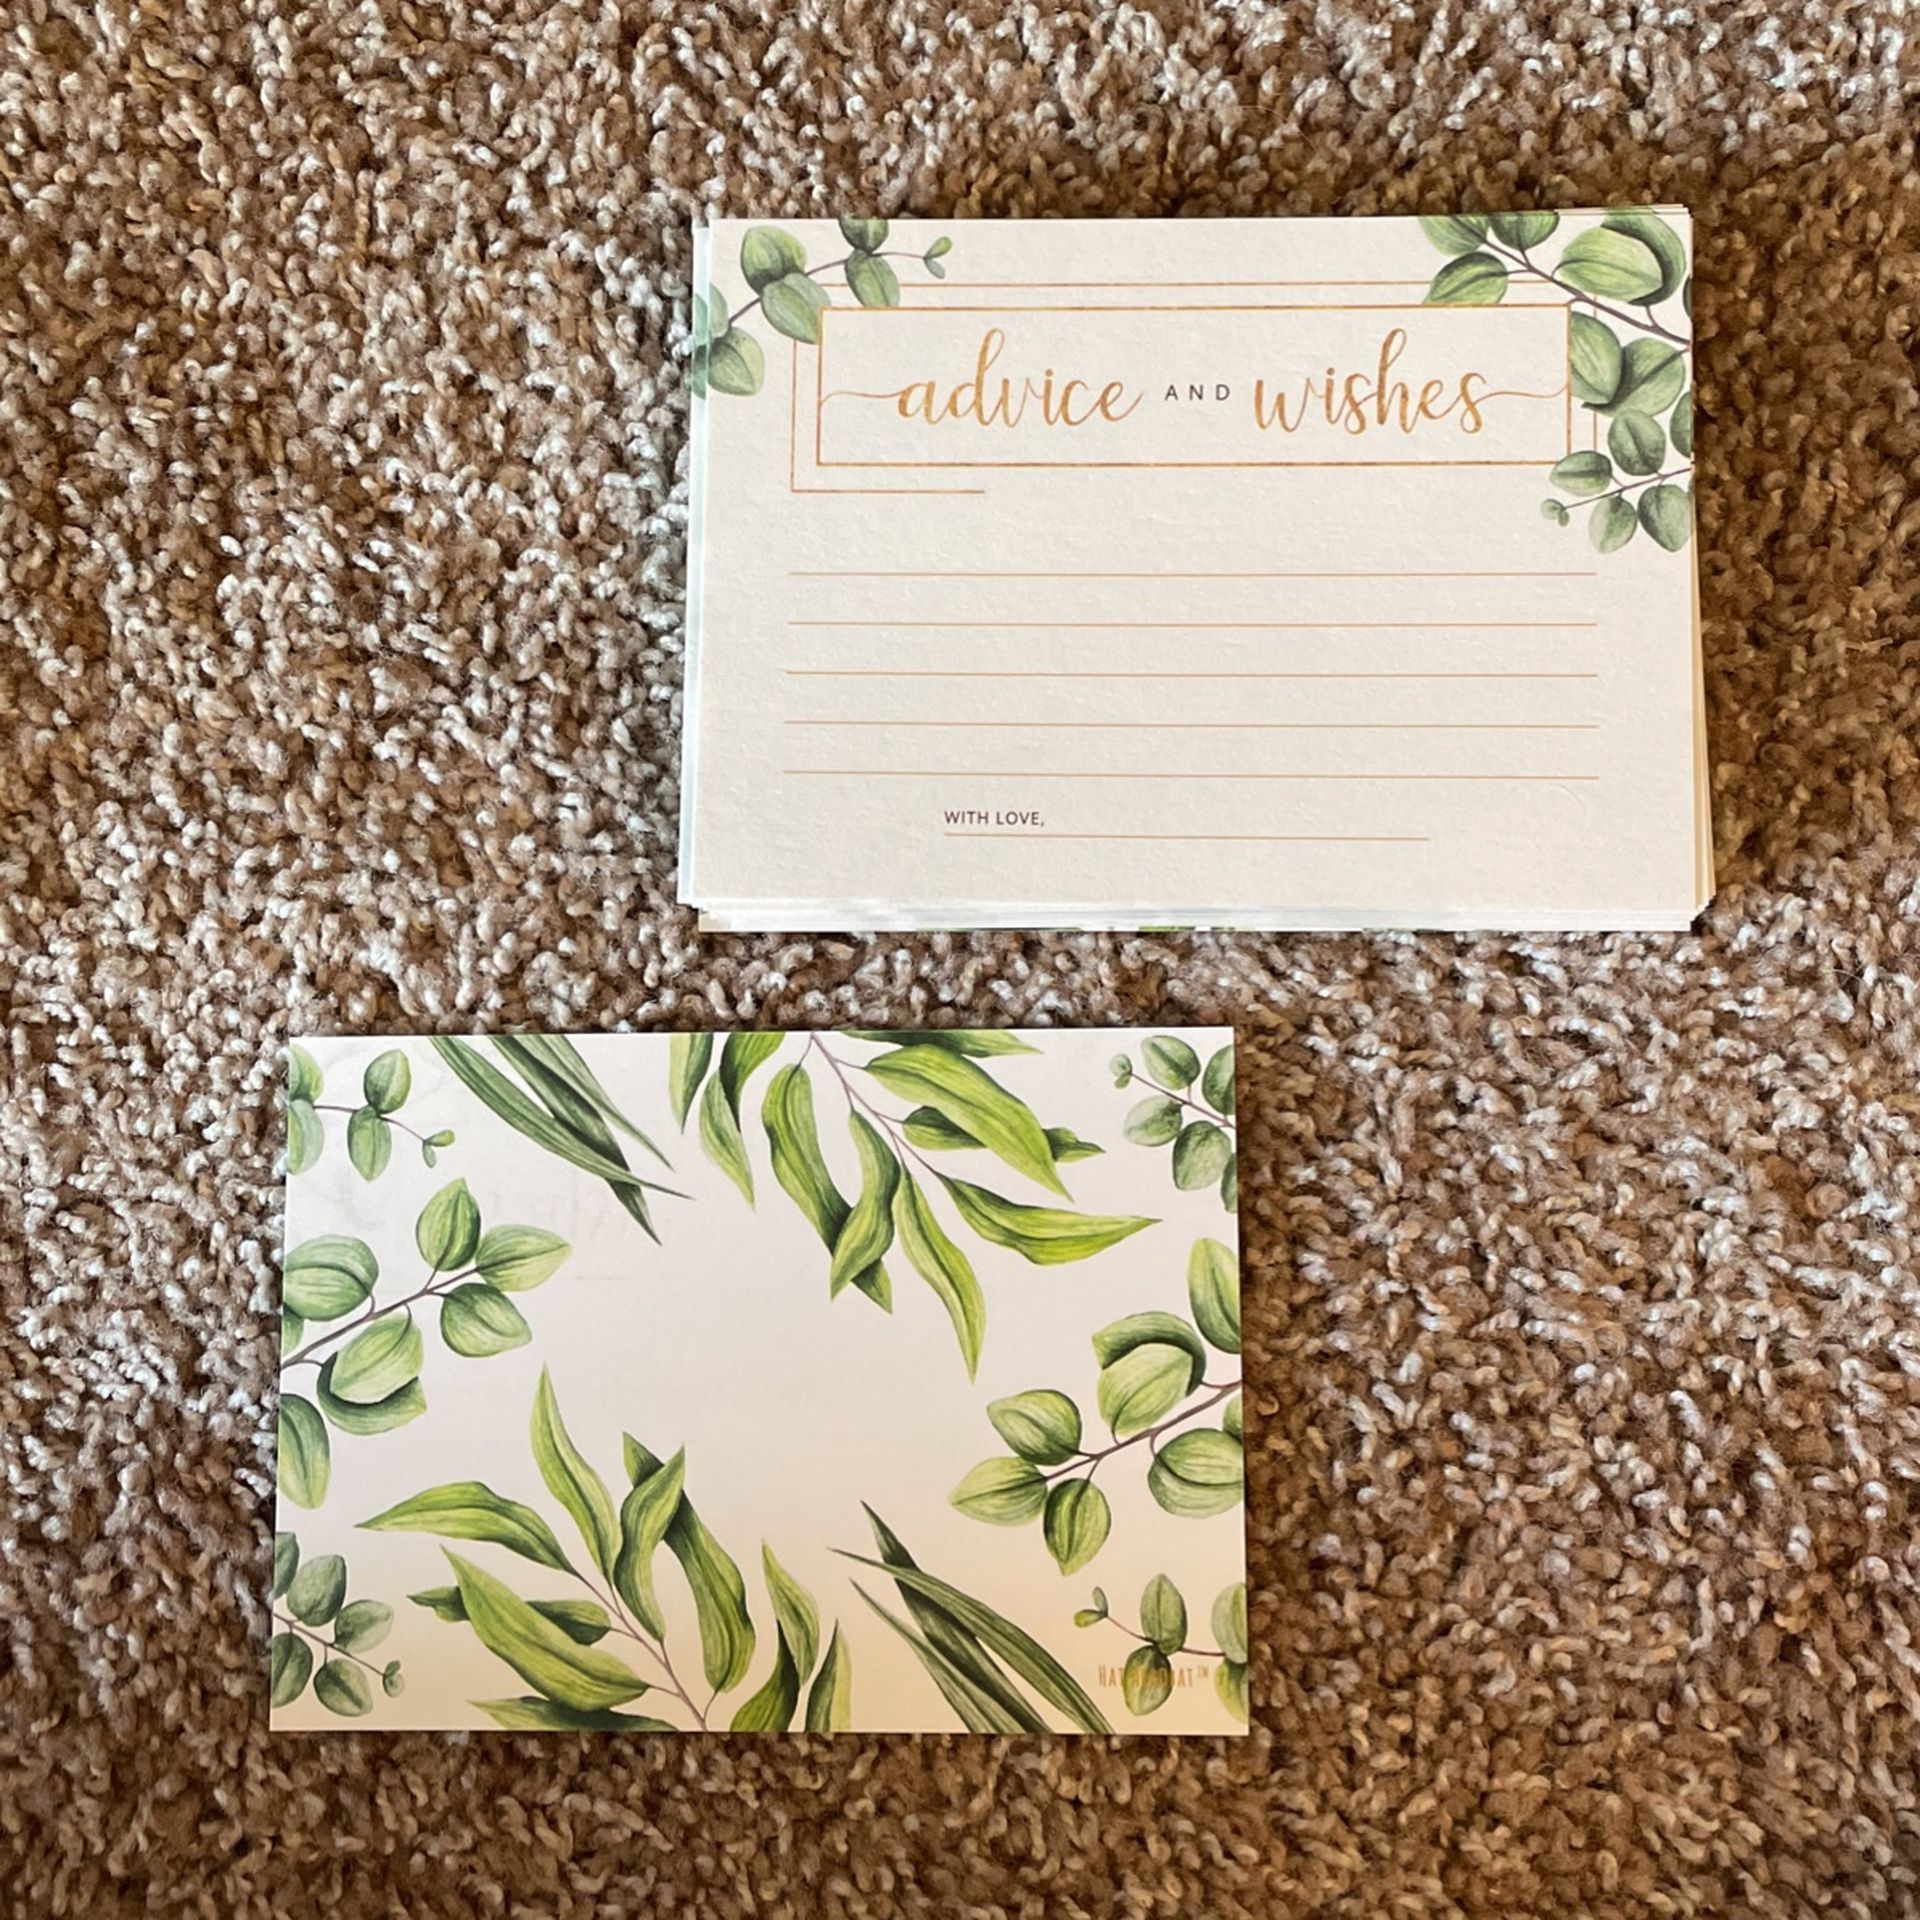 Eucalyptus themed gold and white advice and wishes wedding cards